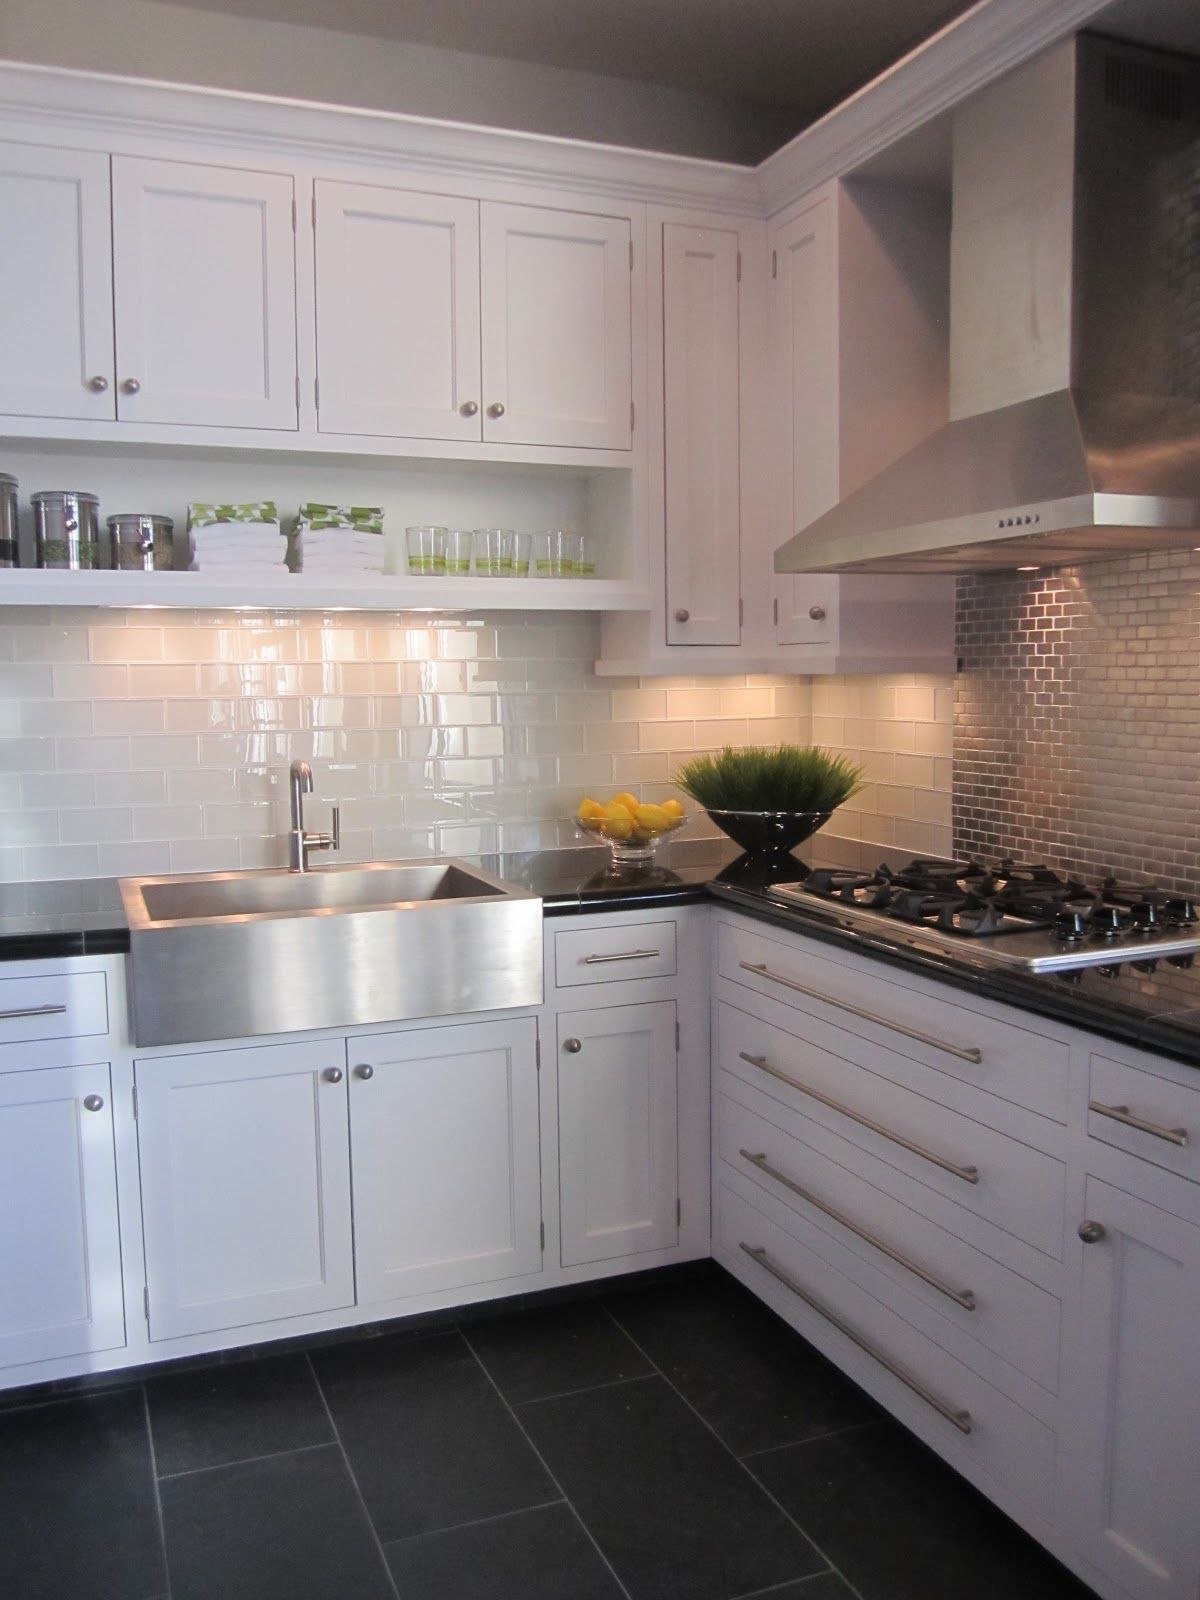 kitchen floor cabinets storage canisters white cabinet dark grey tiles lovely